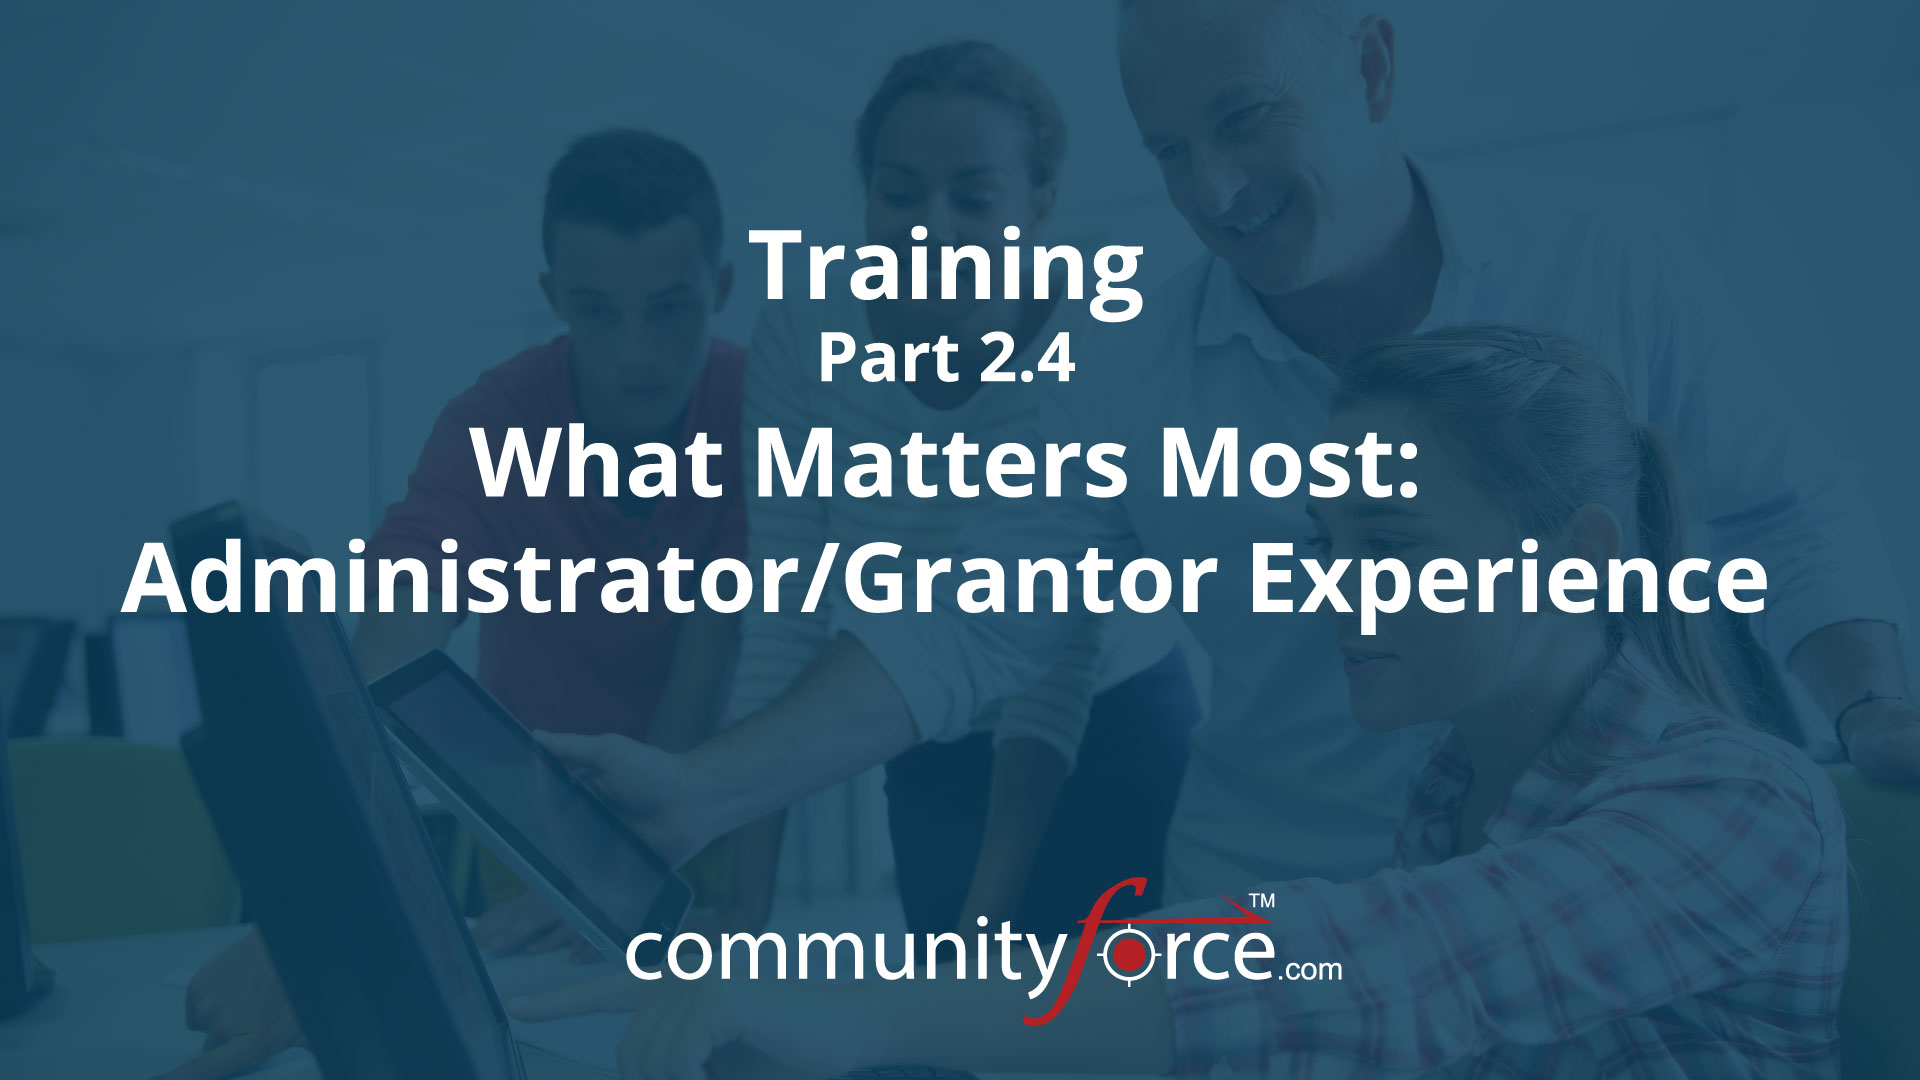 LF1 Training Part 2.4: What Matters Most: Administrator/Grantor